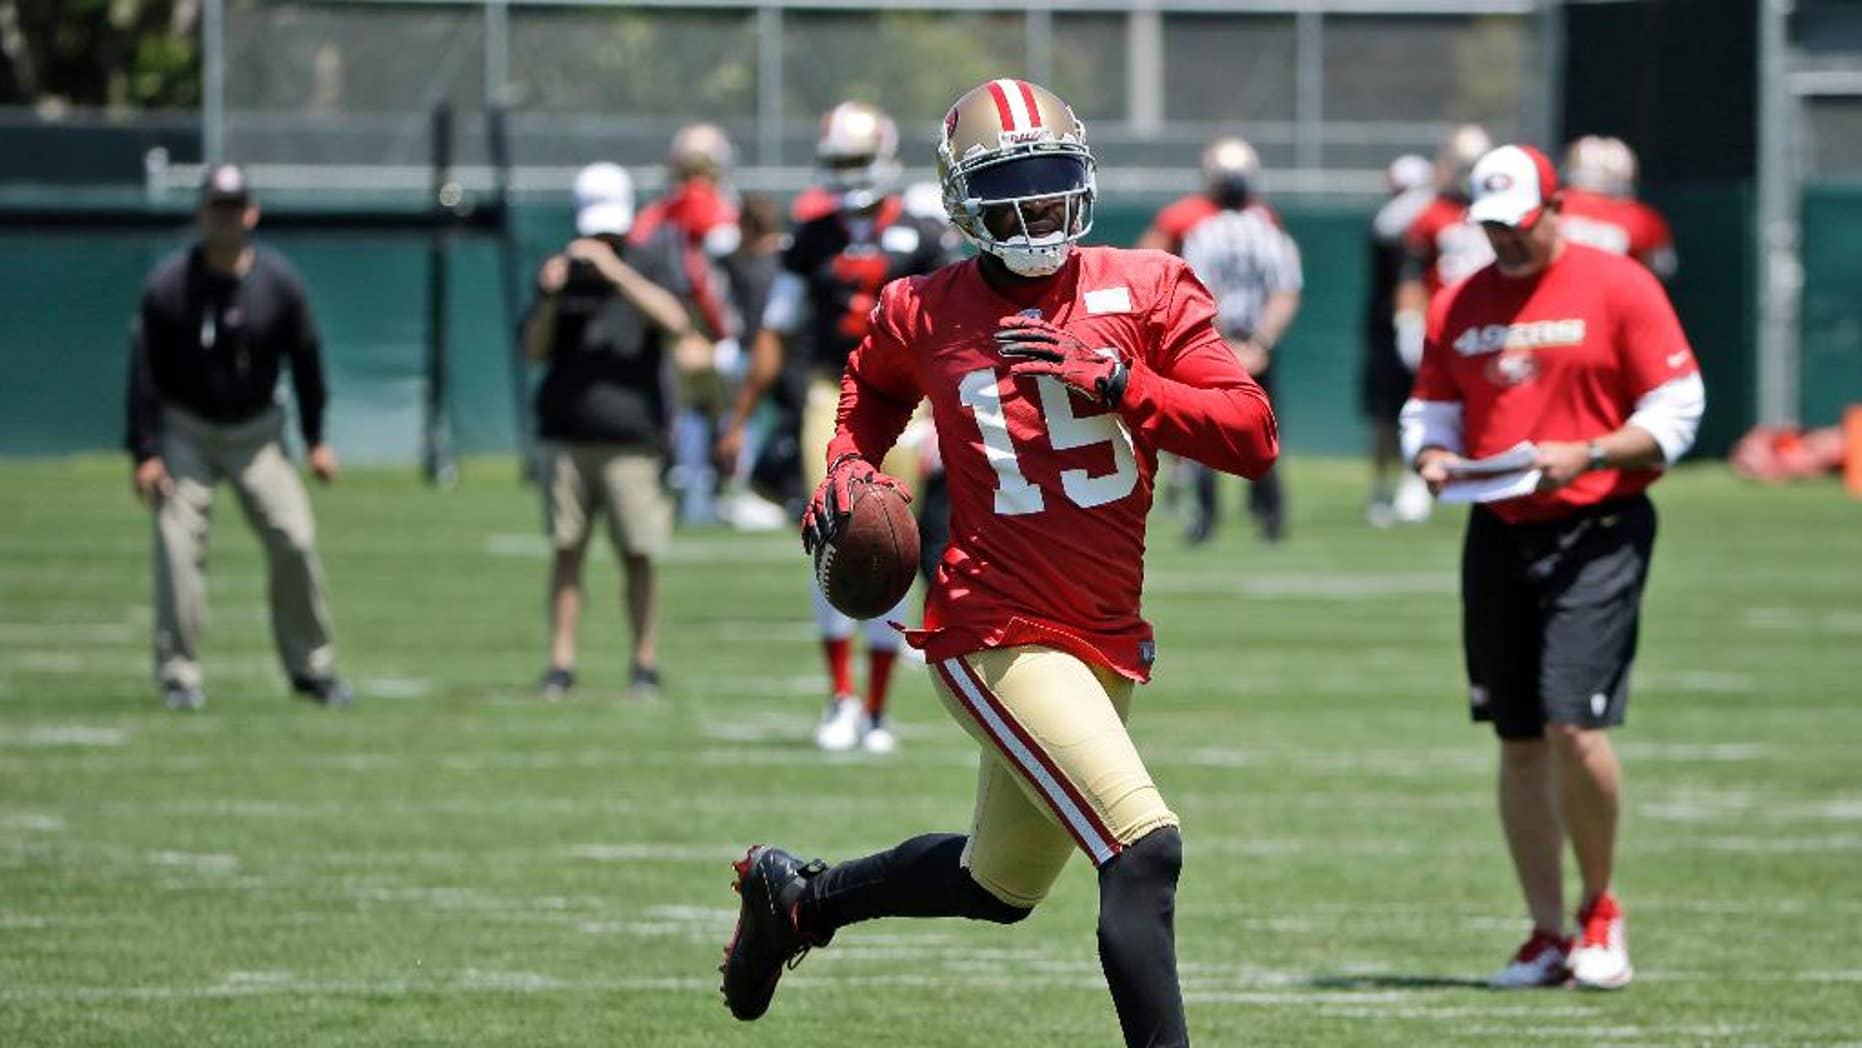 FILE - In this May 28, 2014, file photoo, San Francisco 49ers wide receiver Michael Crabtree runs after a reception during an NFL football pracice in Santa Clara, Calif. Crabtree has been looking forward to this for six seasons _ his first NFL game in his Dallas home. That chance comes Sunday in San Francisco's opener. And the star wide receiver is not about to let a calf injury stand in his way.  (AP Photo/Marcio Jose Sanchez, File)